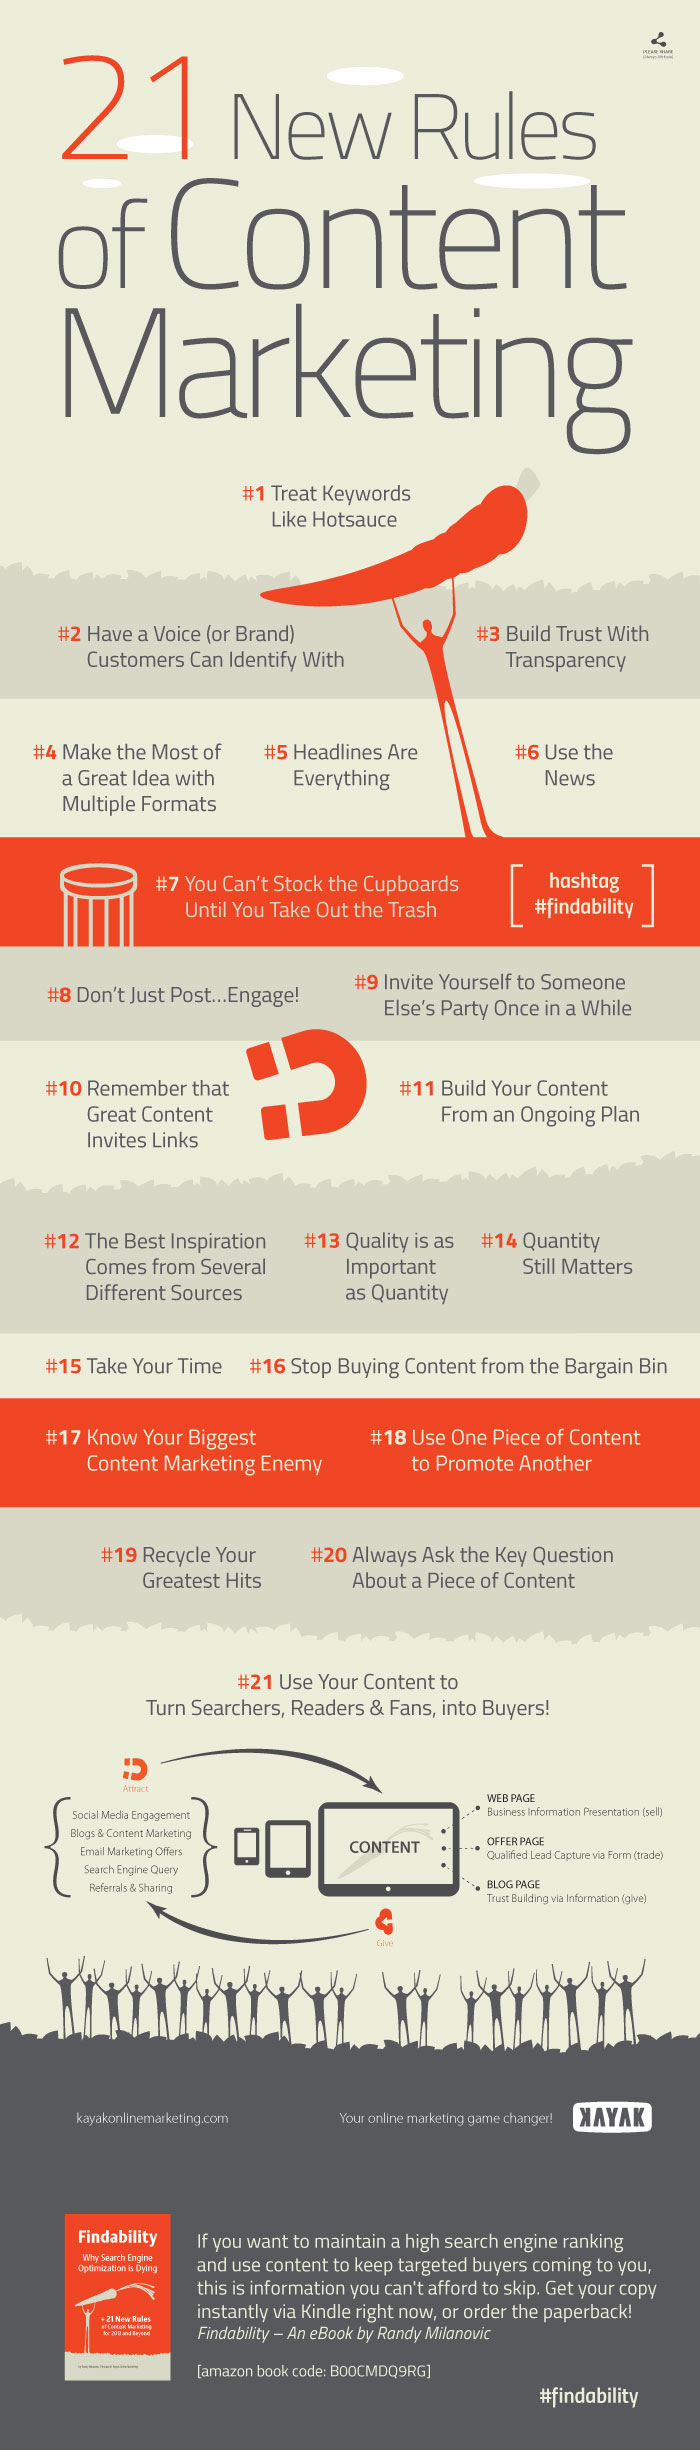 69 21 new rules of content marketing infographic